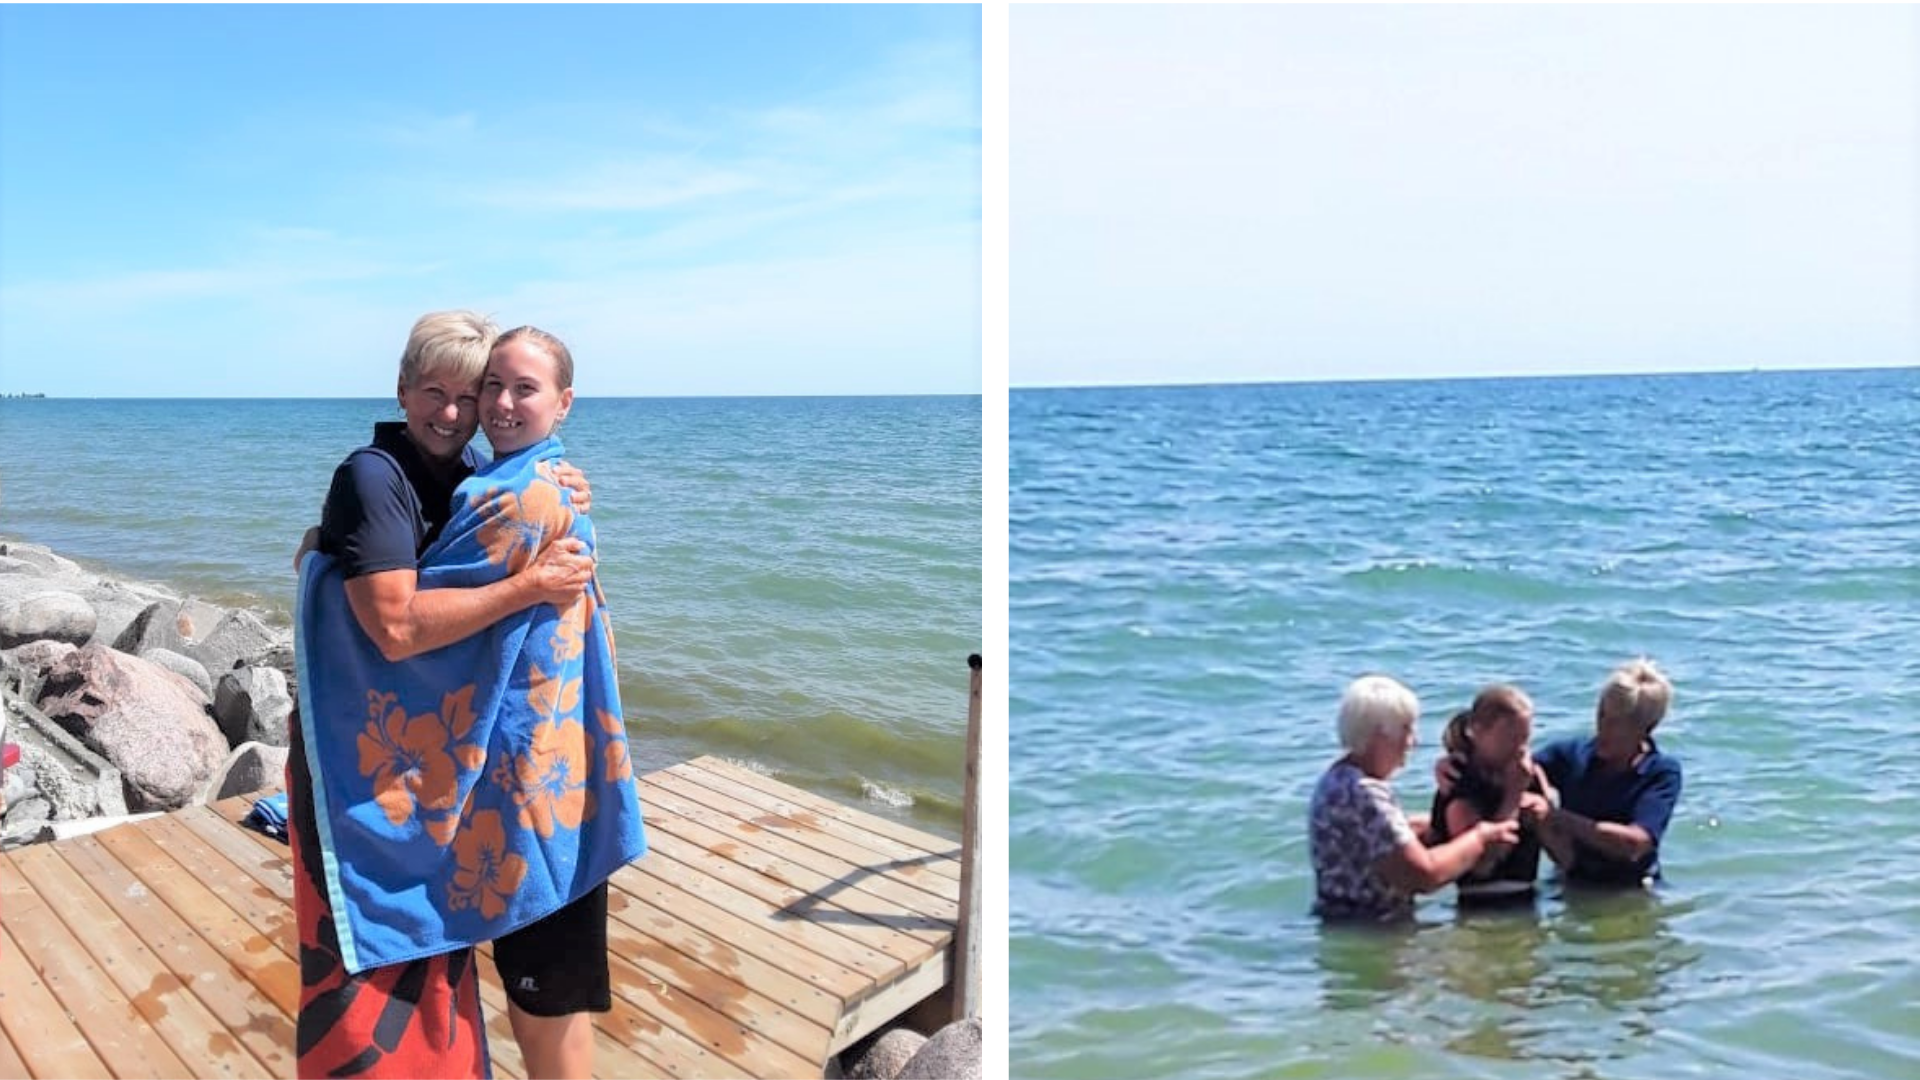 A girl being baptized outside